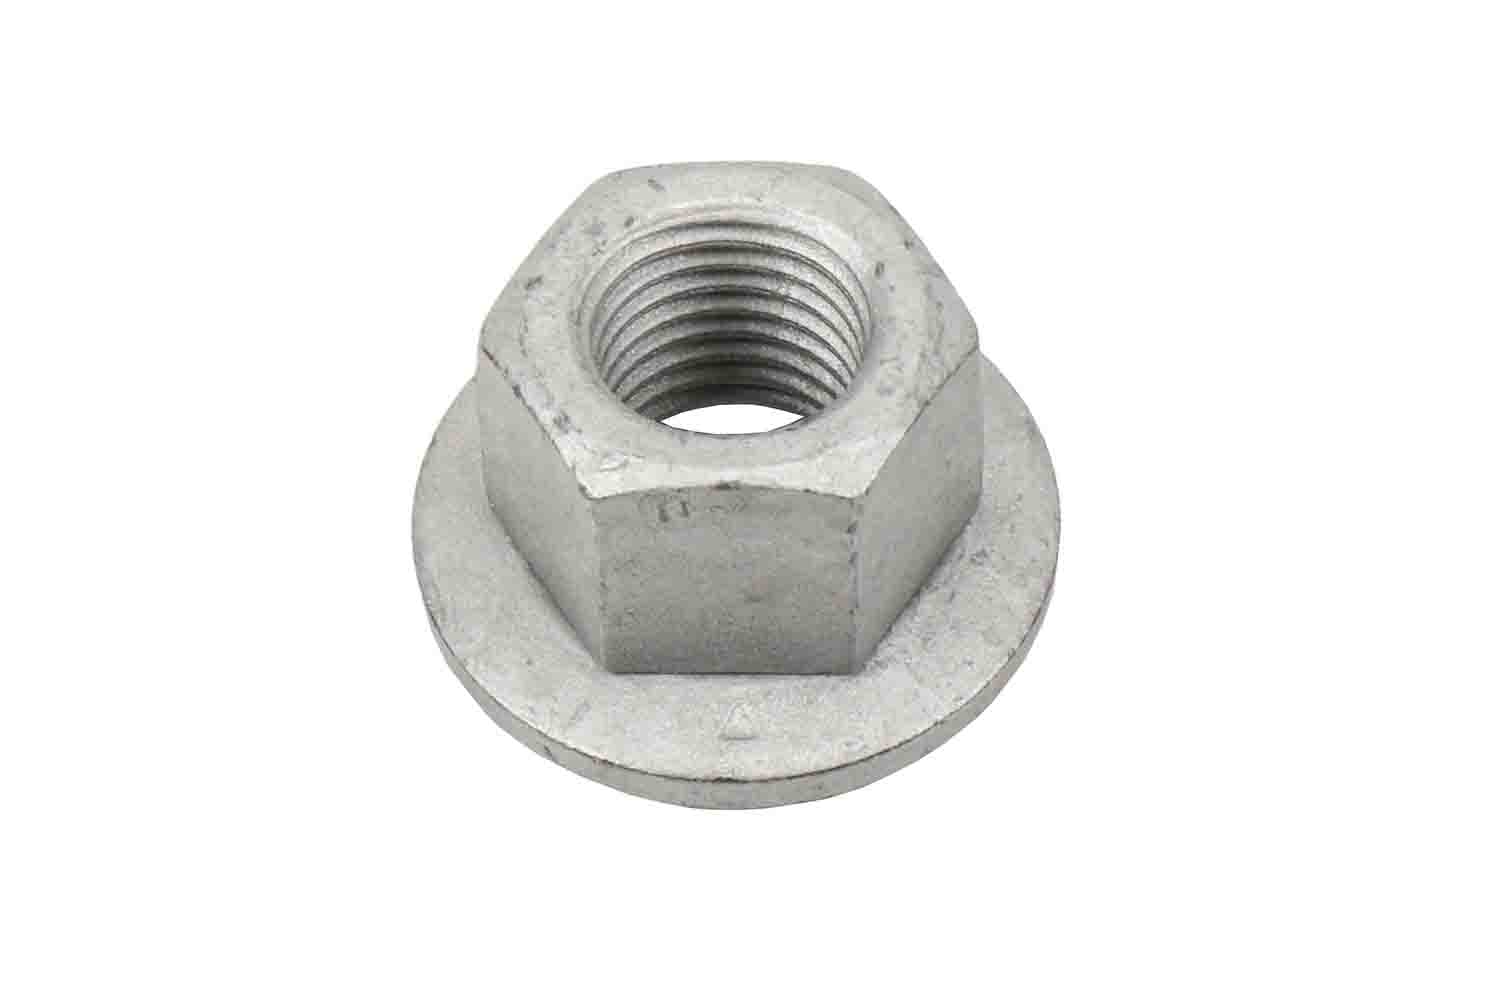 ACDELCO OE SERVICE CANADA - Front Lower Control Arm Ball Stud Nut - DCG 15046285